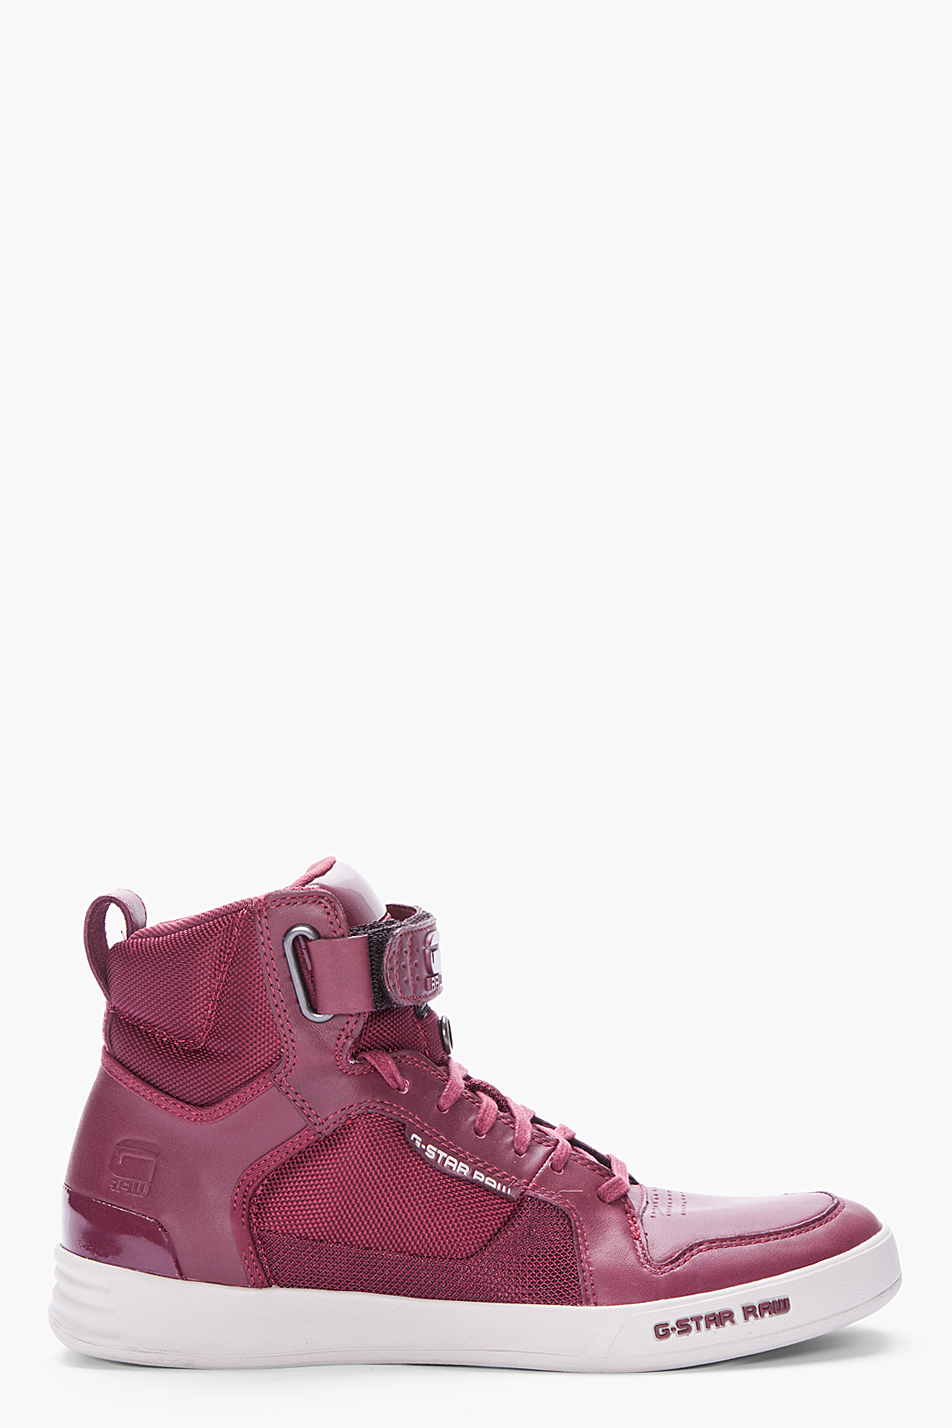 g star raw burgundy leather yard bullion sneakers in purple for men burgundy lyst. Black Bedroom Furniture Sets. Home Design Ideas